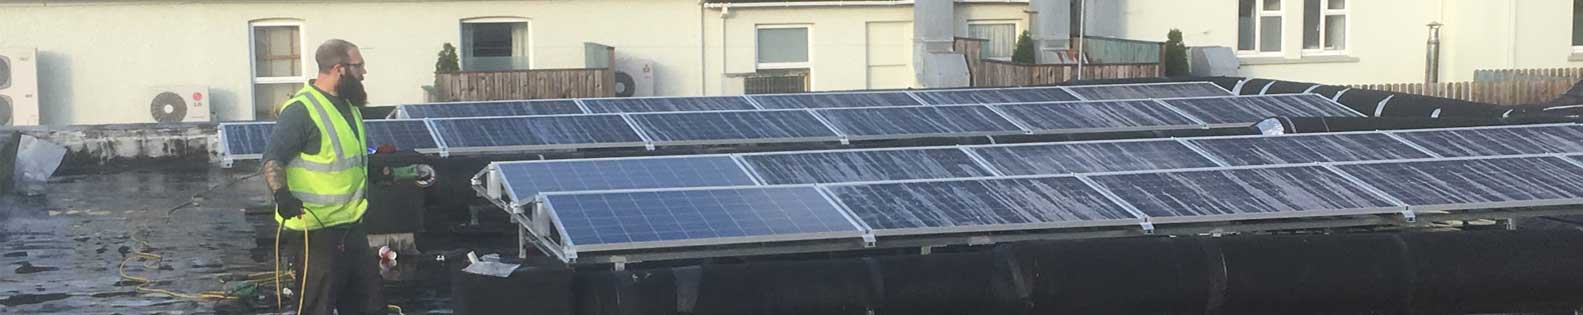 Use sunlight to generate electricity for your business